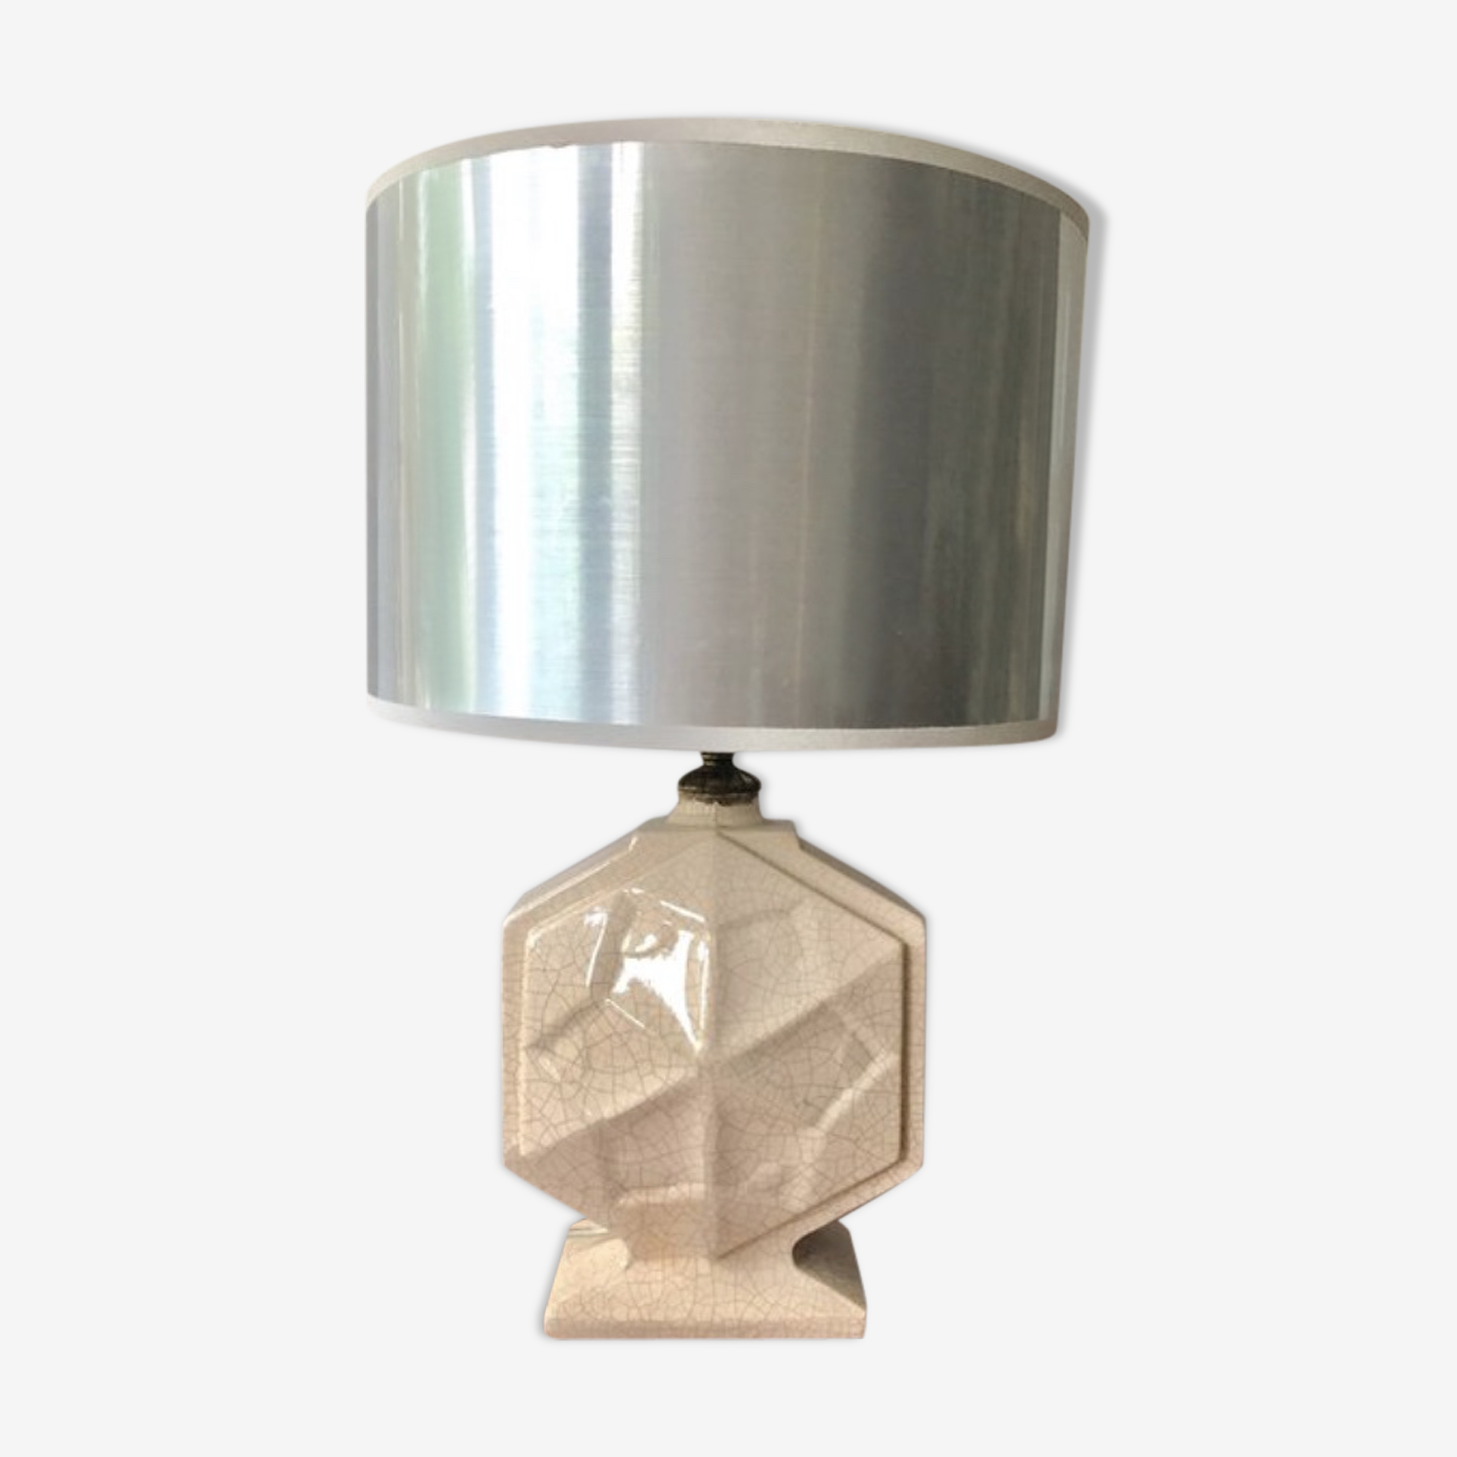 Art deco french pottery table lamp